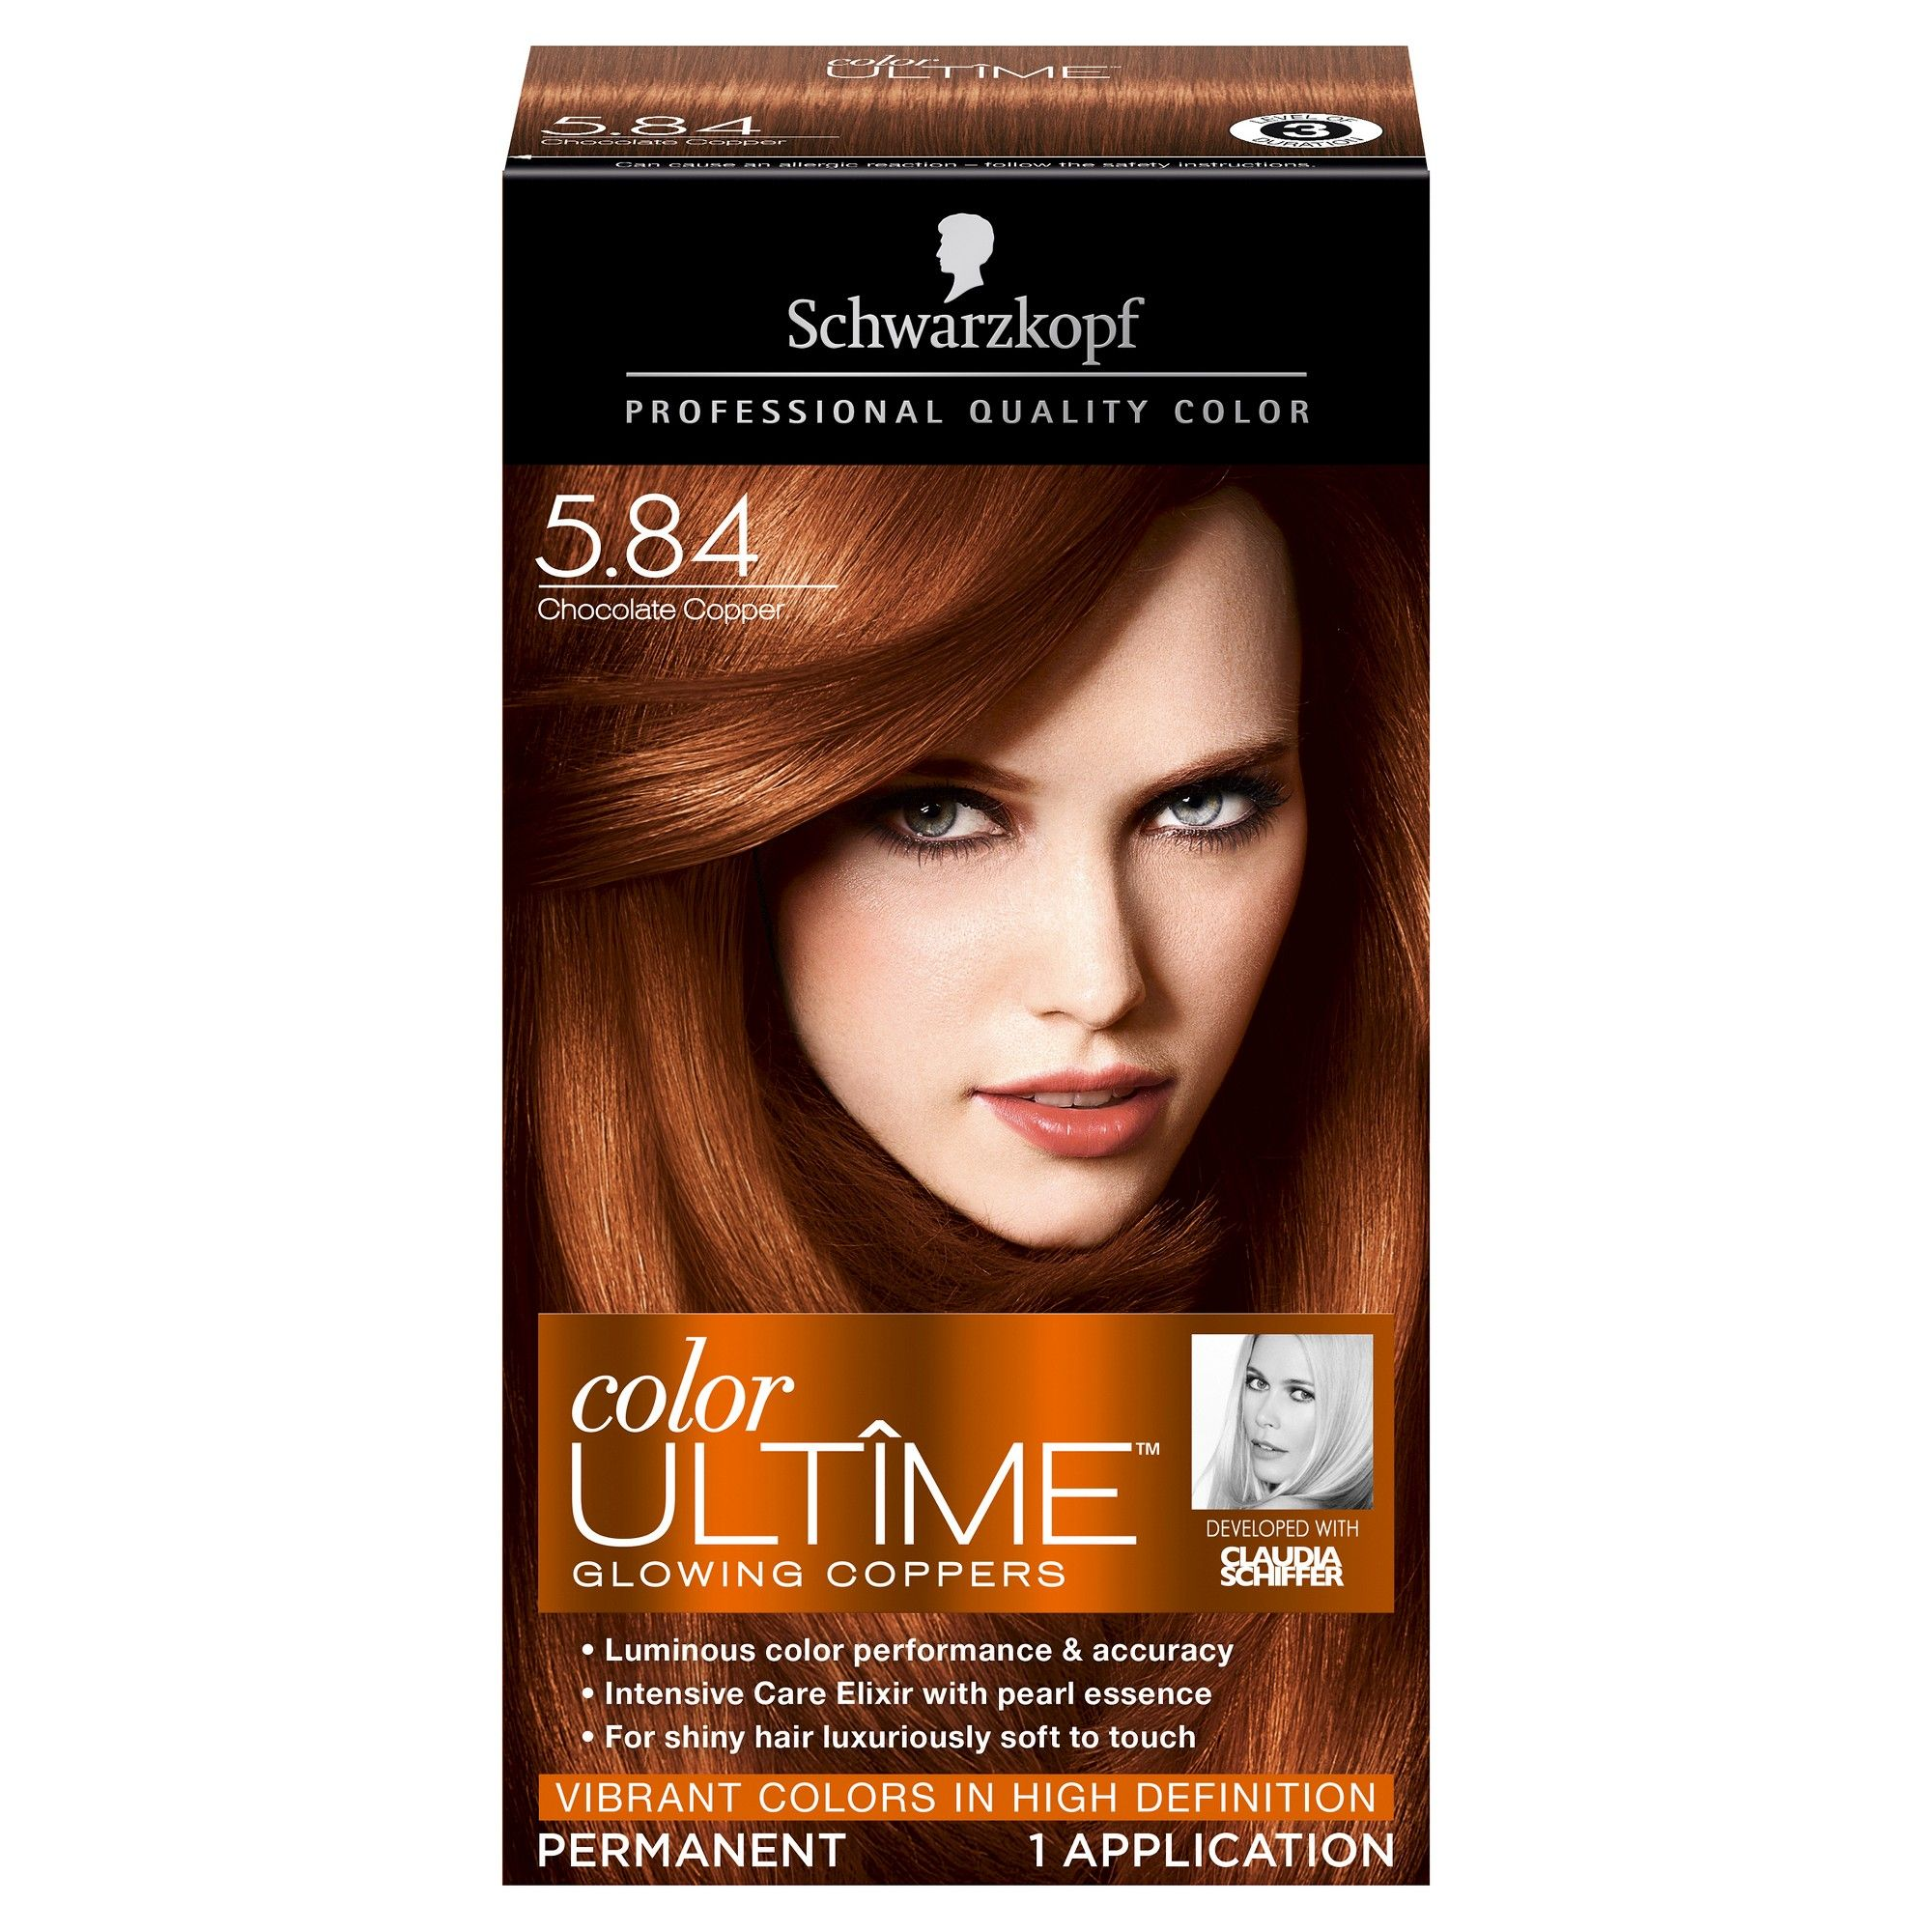 Schwarzkopf Color Ultime Glowing Coppers Hair Color 5 84 Chocolate